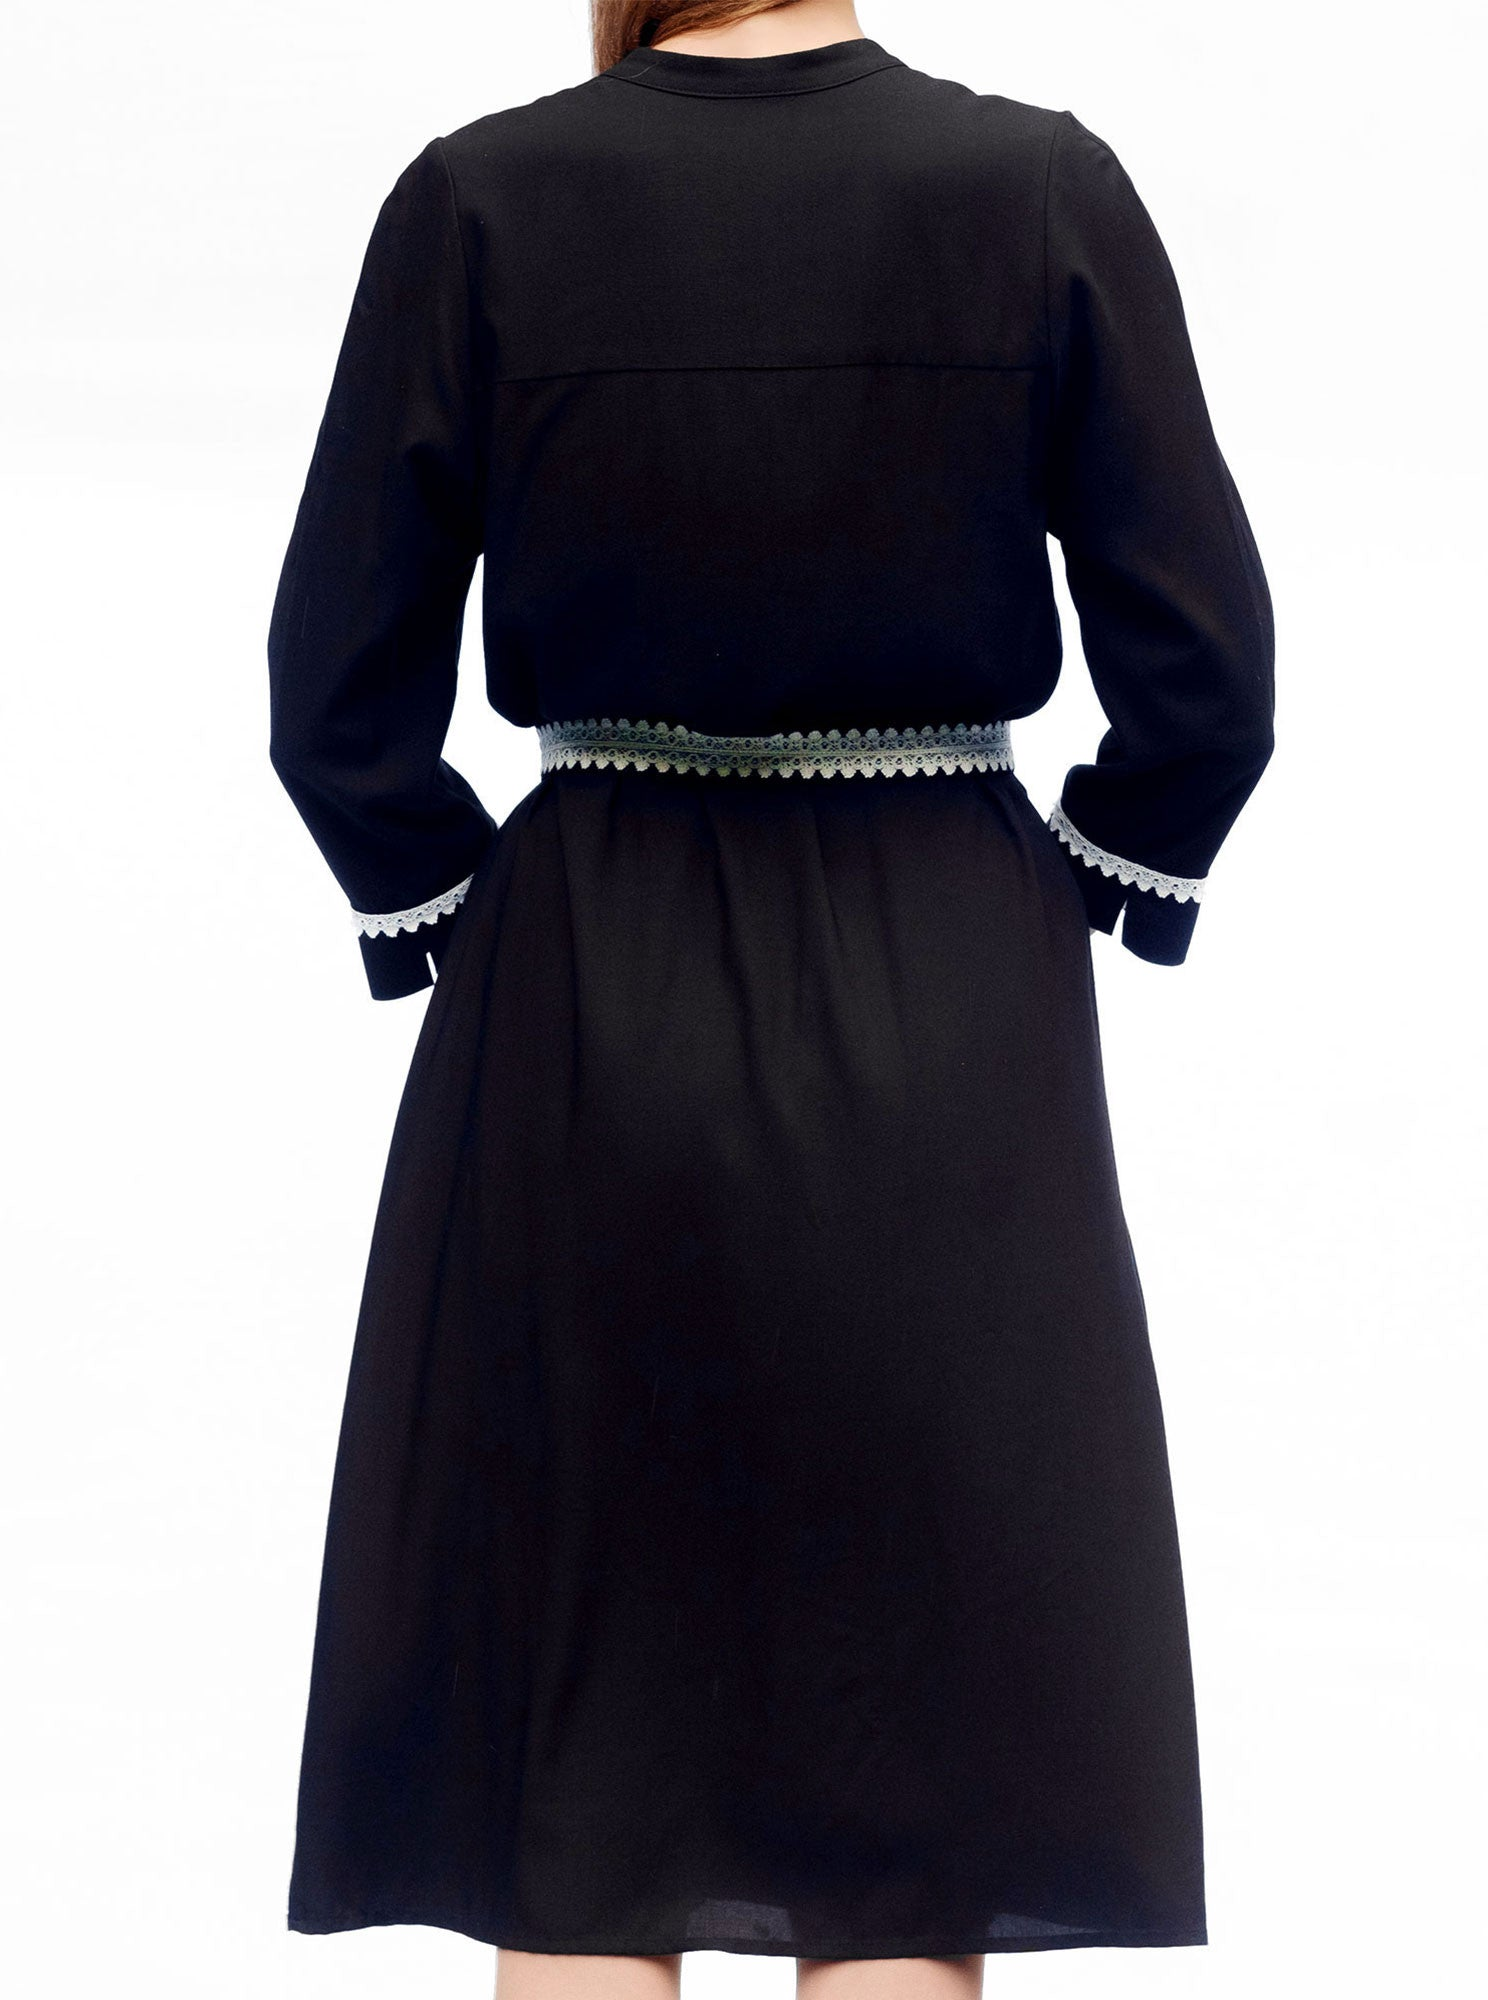 SORGO Bamboo Black Dress